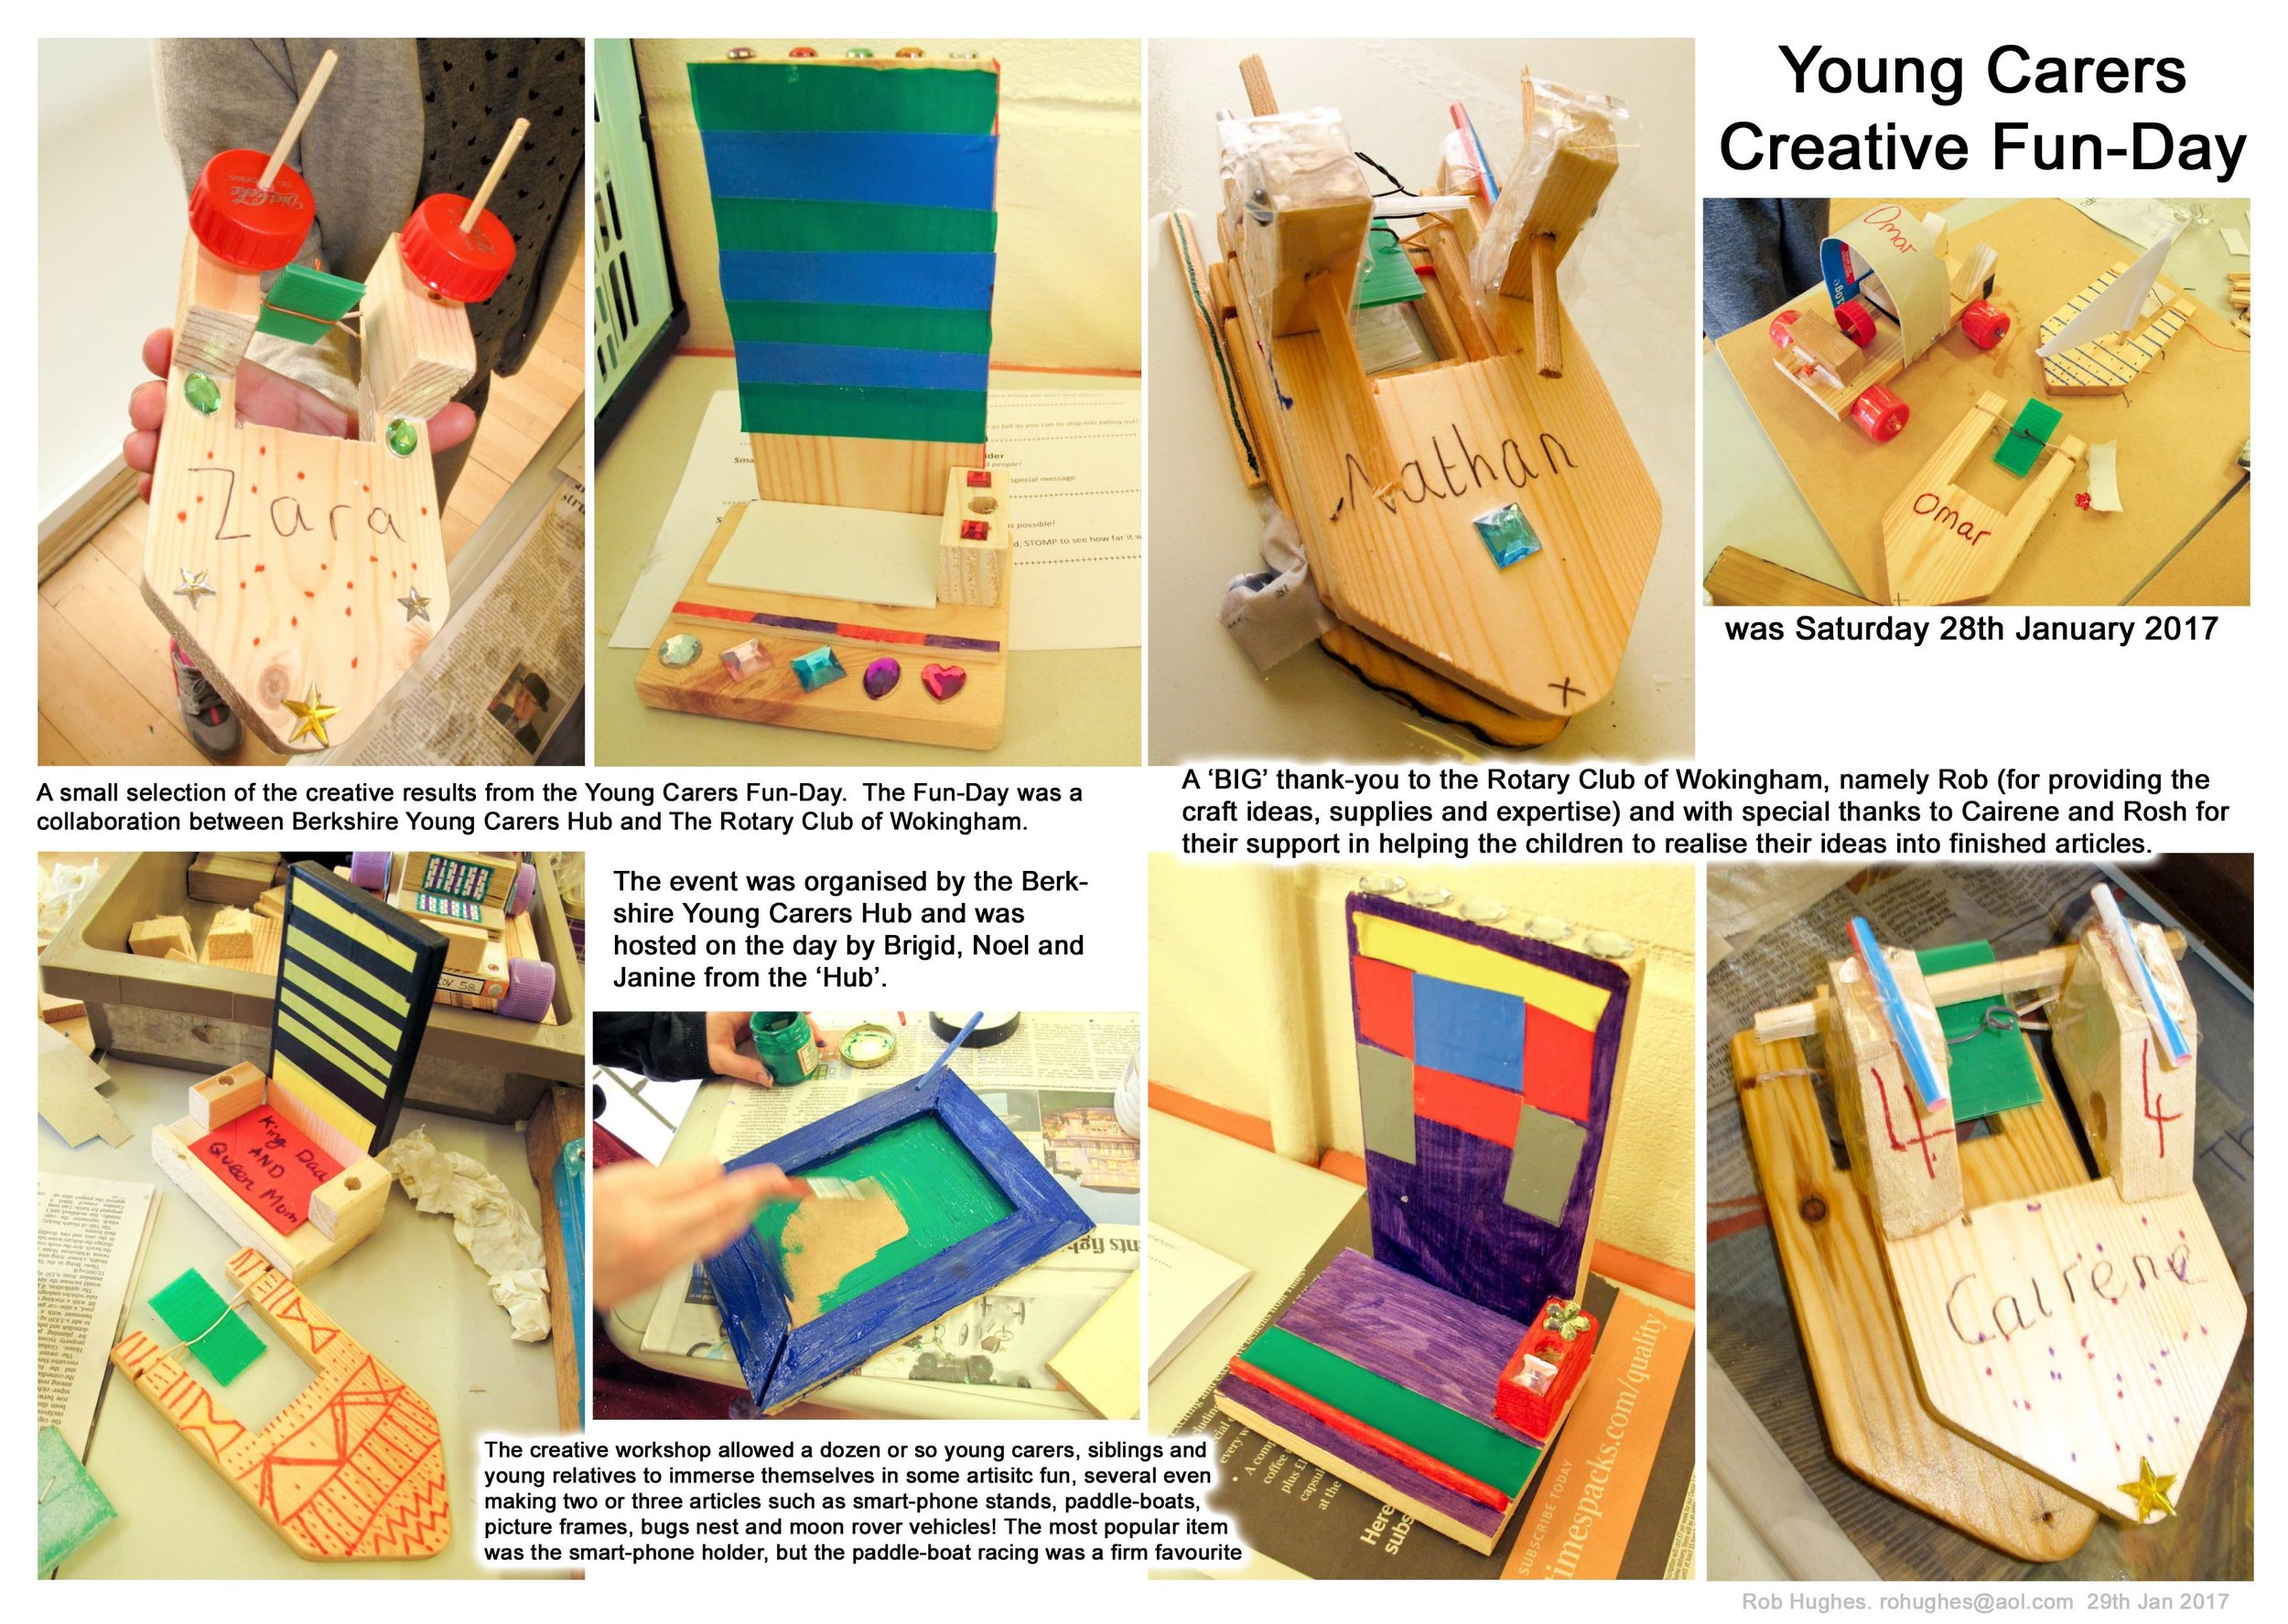 g2426montage_YoungCarersFunday20170129a.jpg